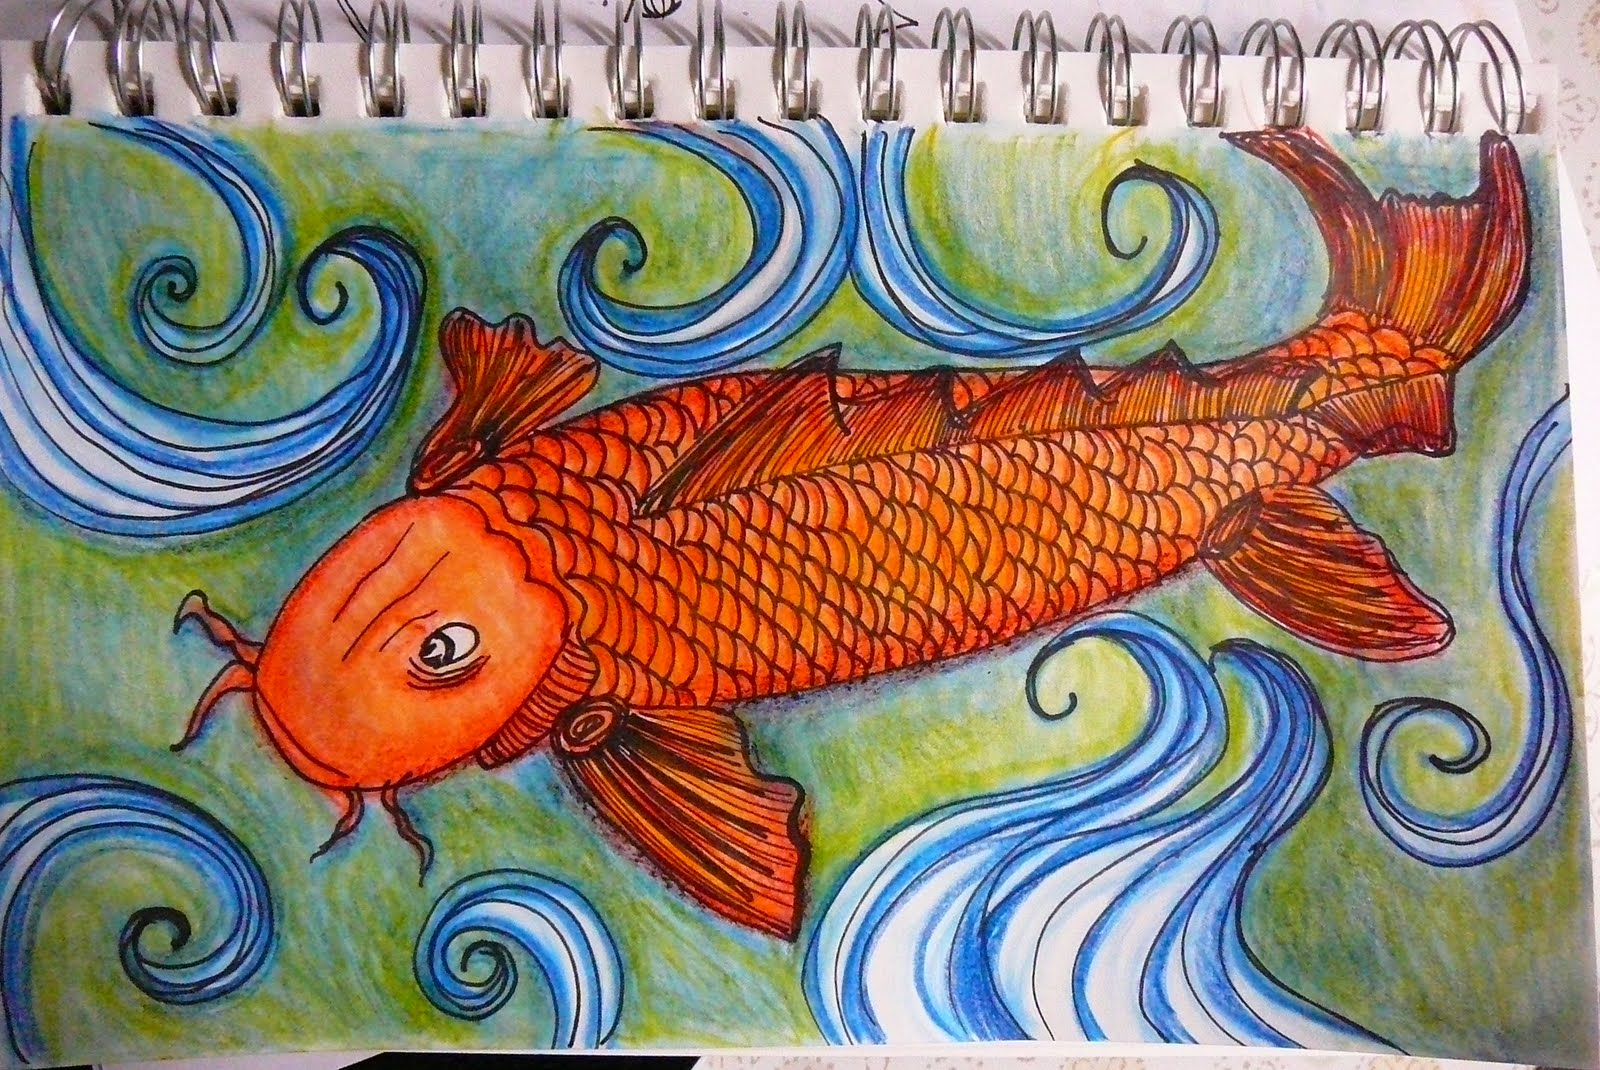 Breathe!!: some recent zentangles and artwork I have doodled out...